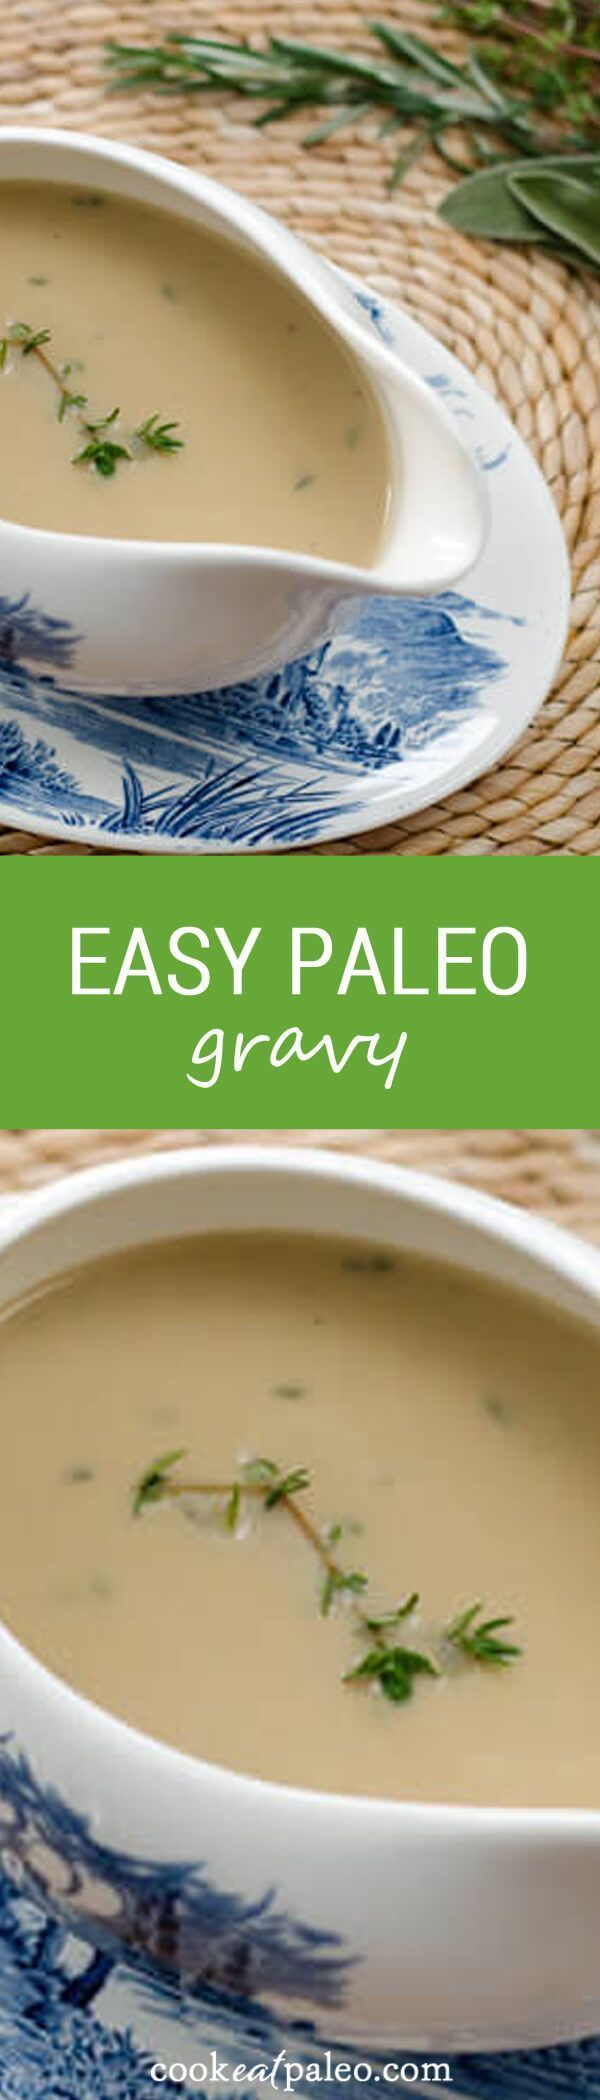 This easy paleo gravy recipe uses pureed vegetables, pan drippings and fresh herbs for that traditional Thanksgiving gravy flavor. It's gluten-free and grain-free. ~ http://cookeatpaleo.com